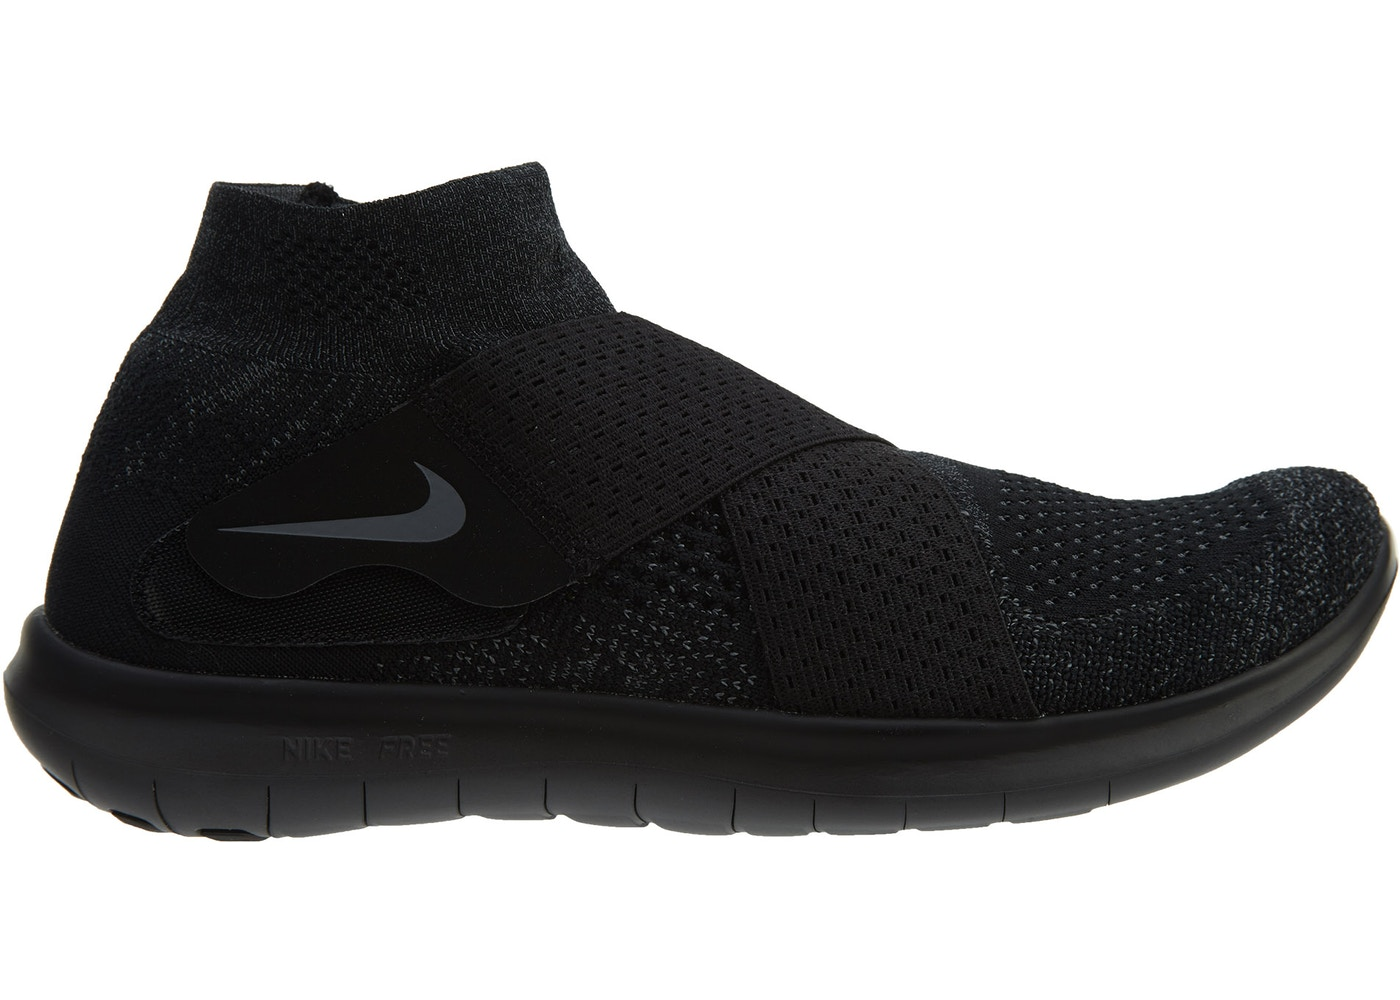 5435fcf40f Sell. or Ask. Size: 8.5. View All Bids. Nike Free Rn Motion Fk 2017 Black  Dark Grey-Anthracite